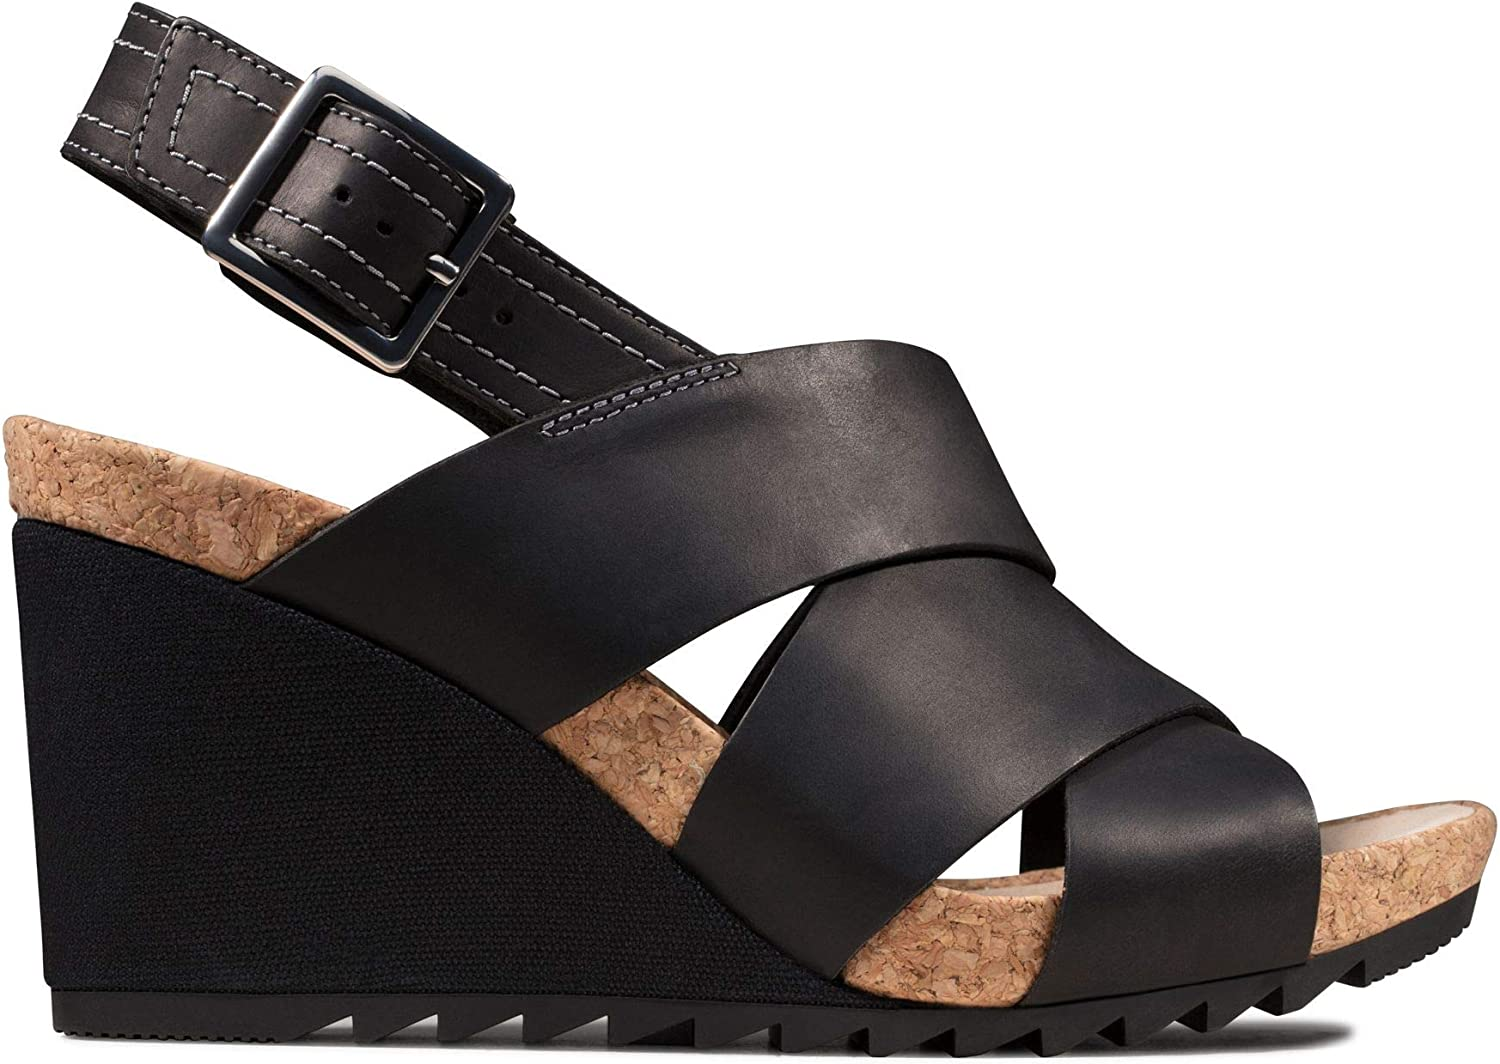 Clarks Damen Flex Sand Slingback Sandalen Schwarz Black Leather Black Leather